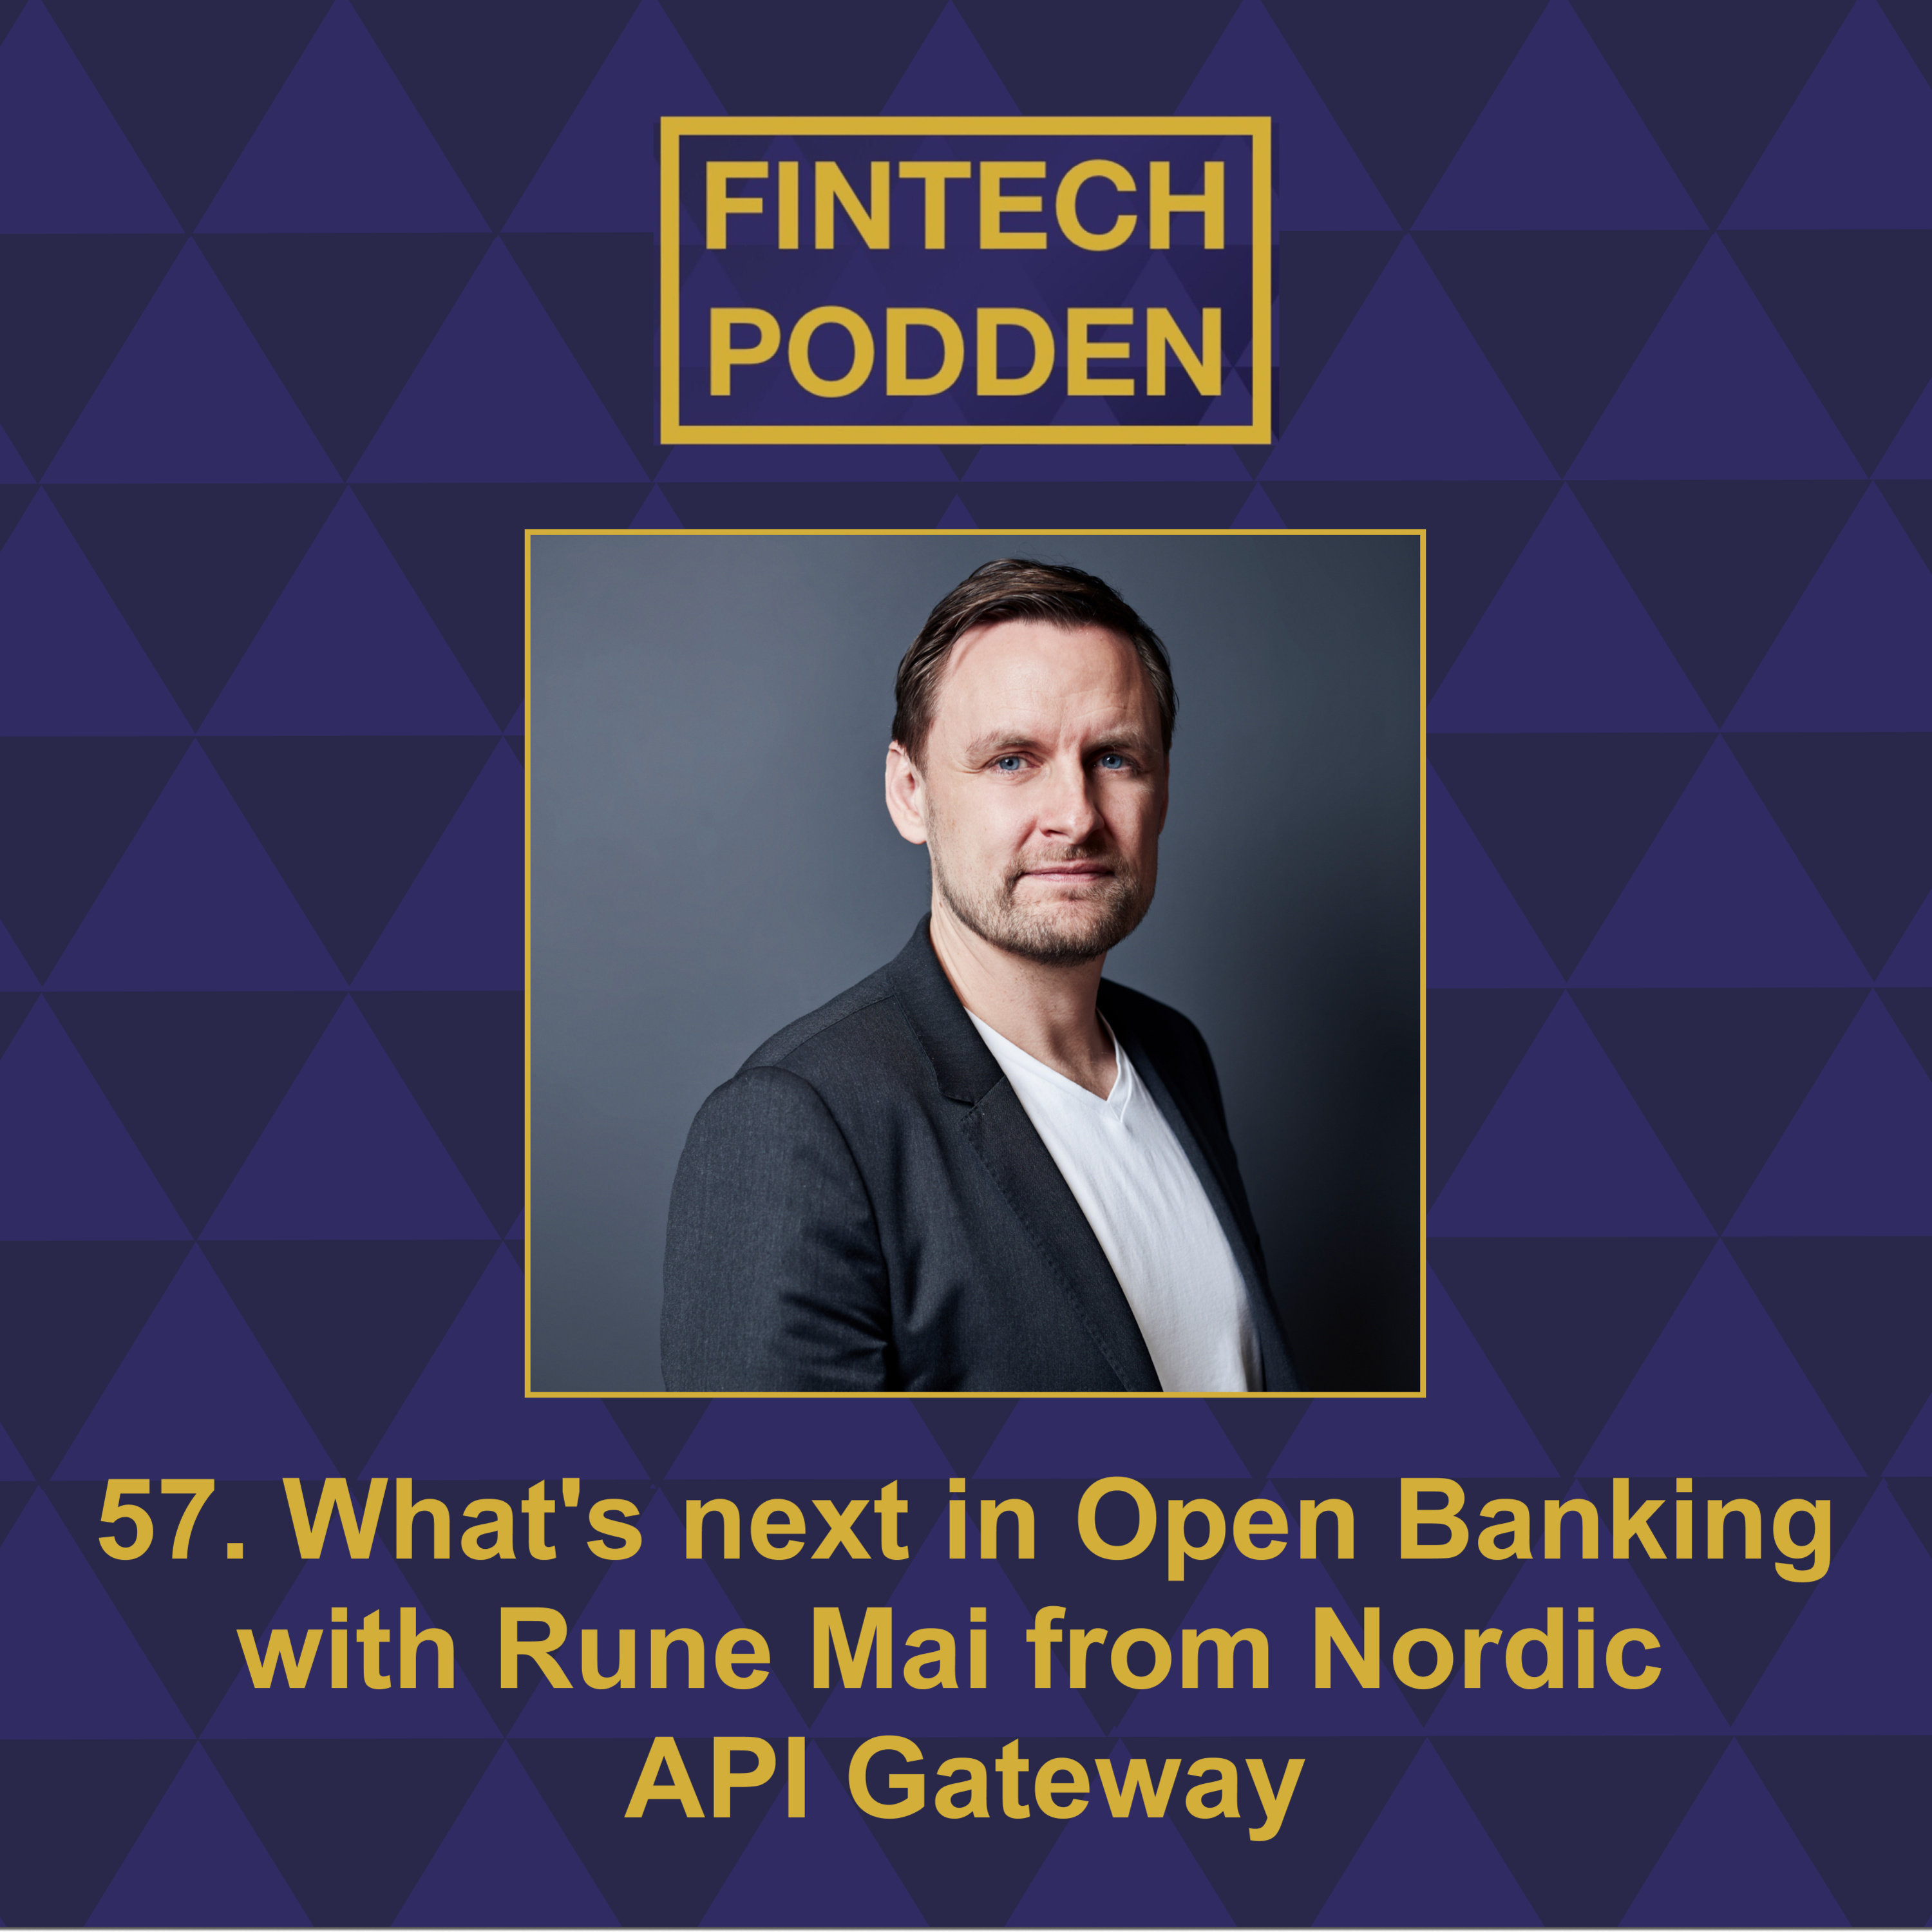 57. What's next in Open Banking with Rune Mai from Nordic API Gateway